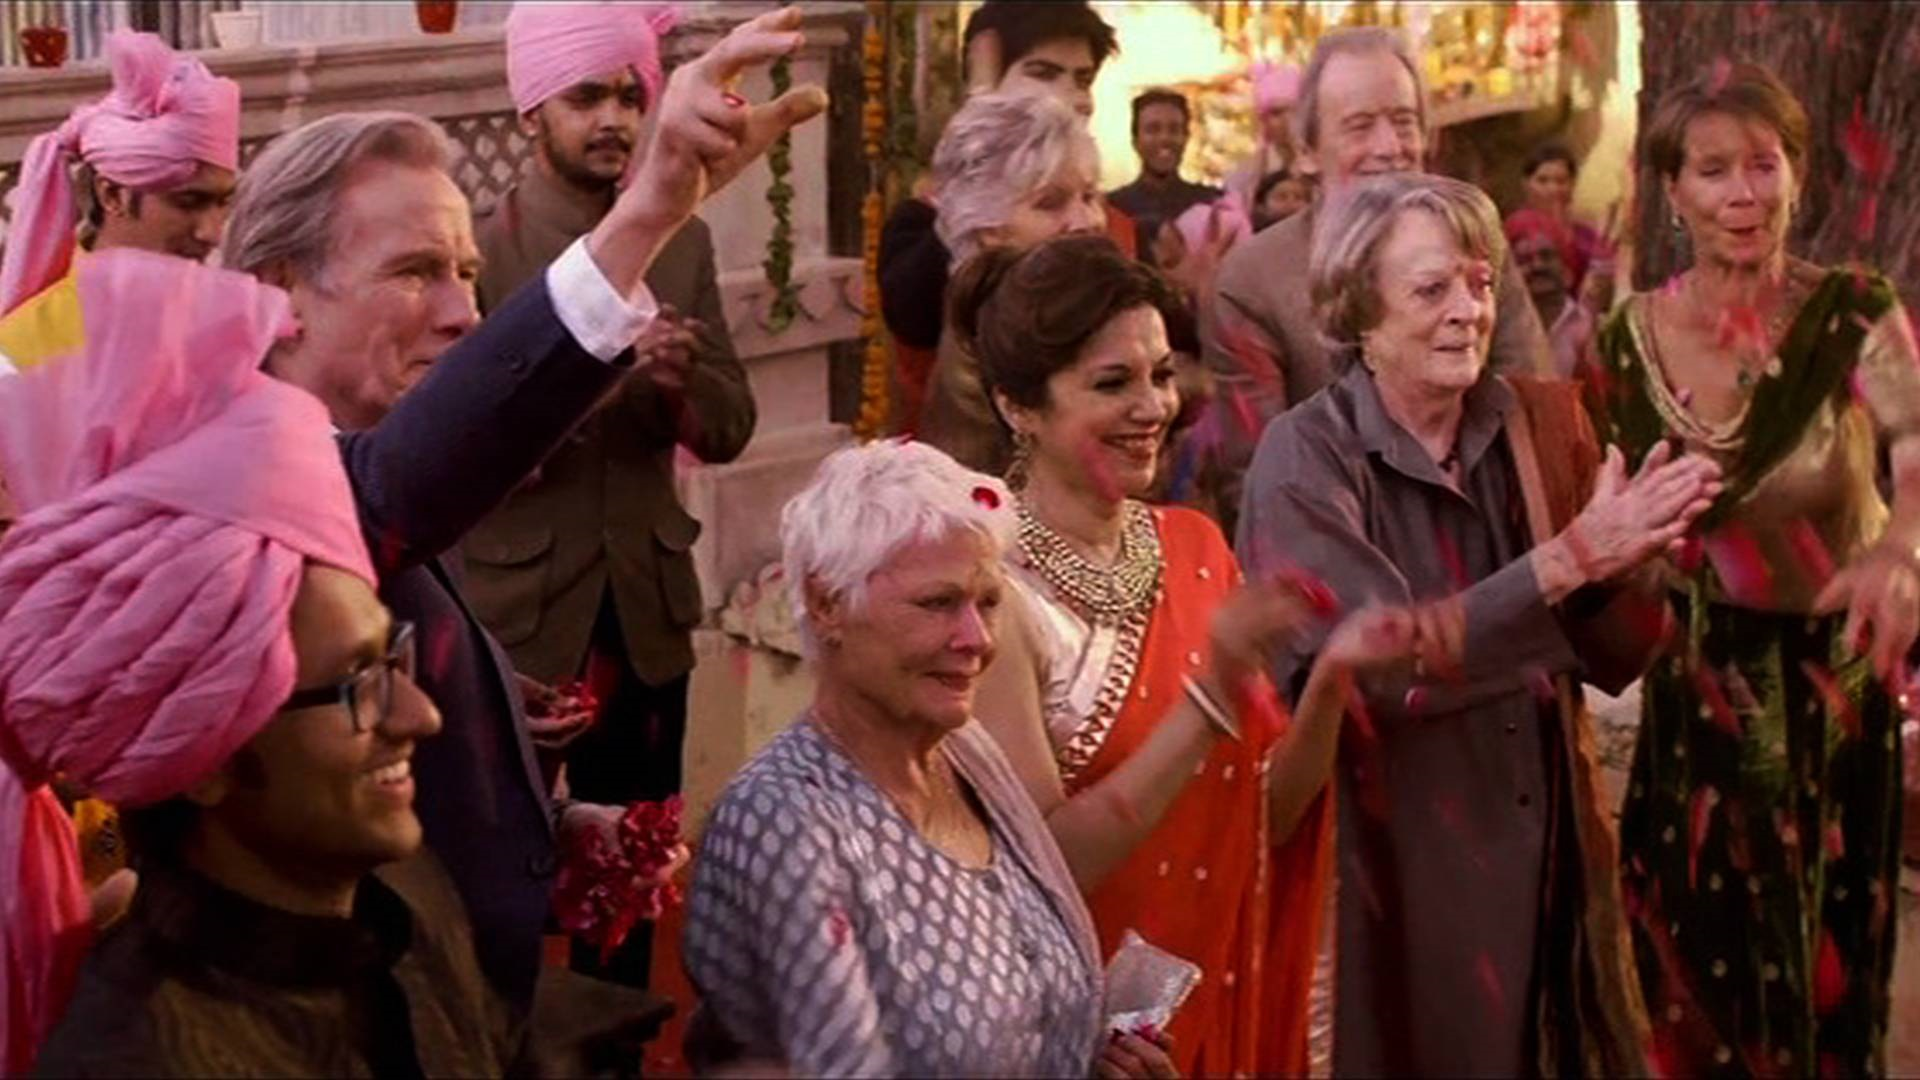 Hasil gambar untuk THE BEST EXOTIC MARIGOLD HOTEL movie scene